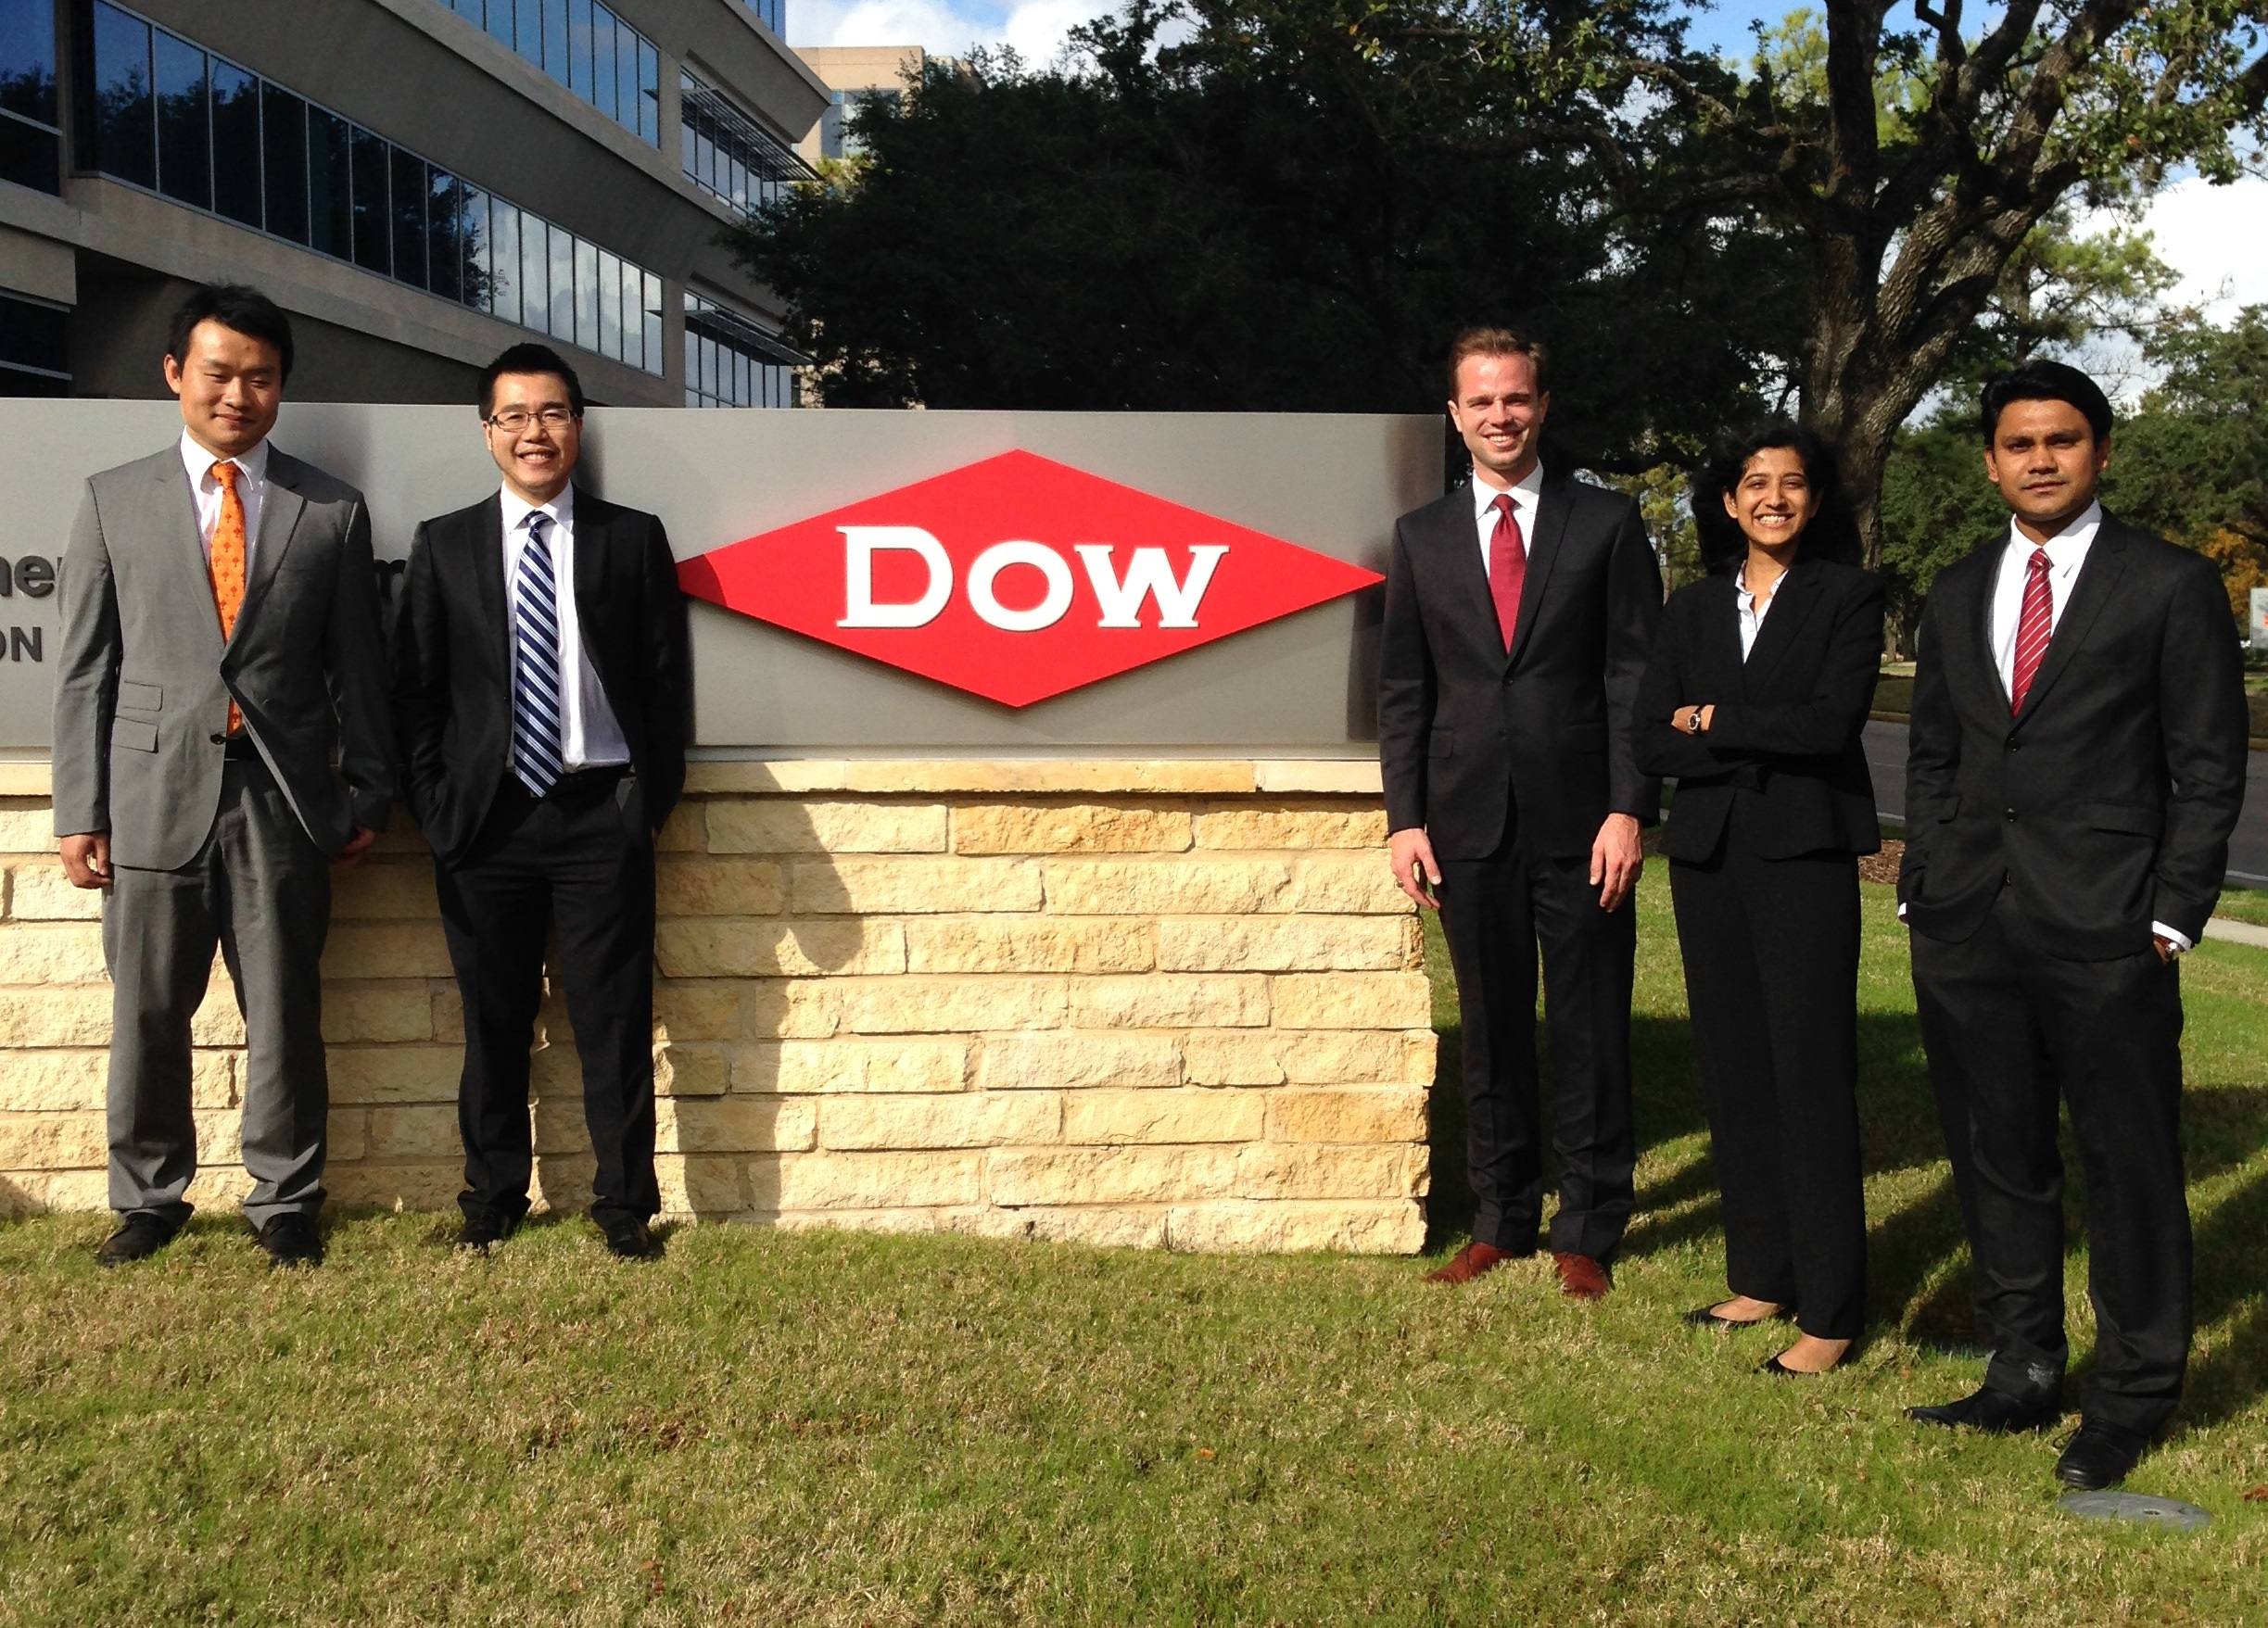 Dow - Texas MBA Students